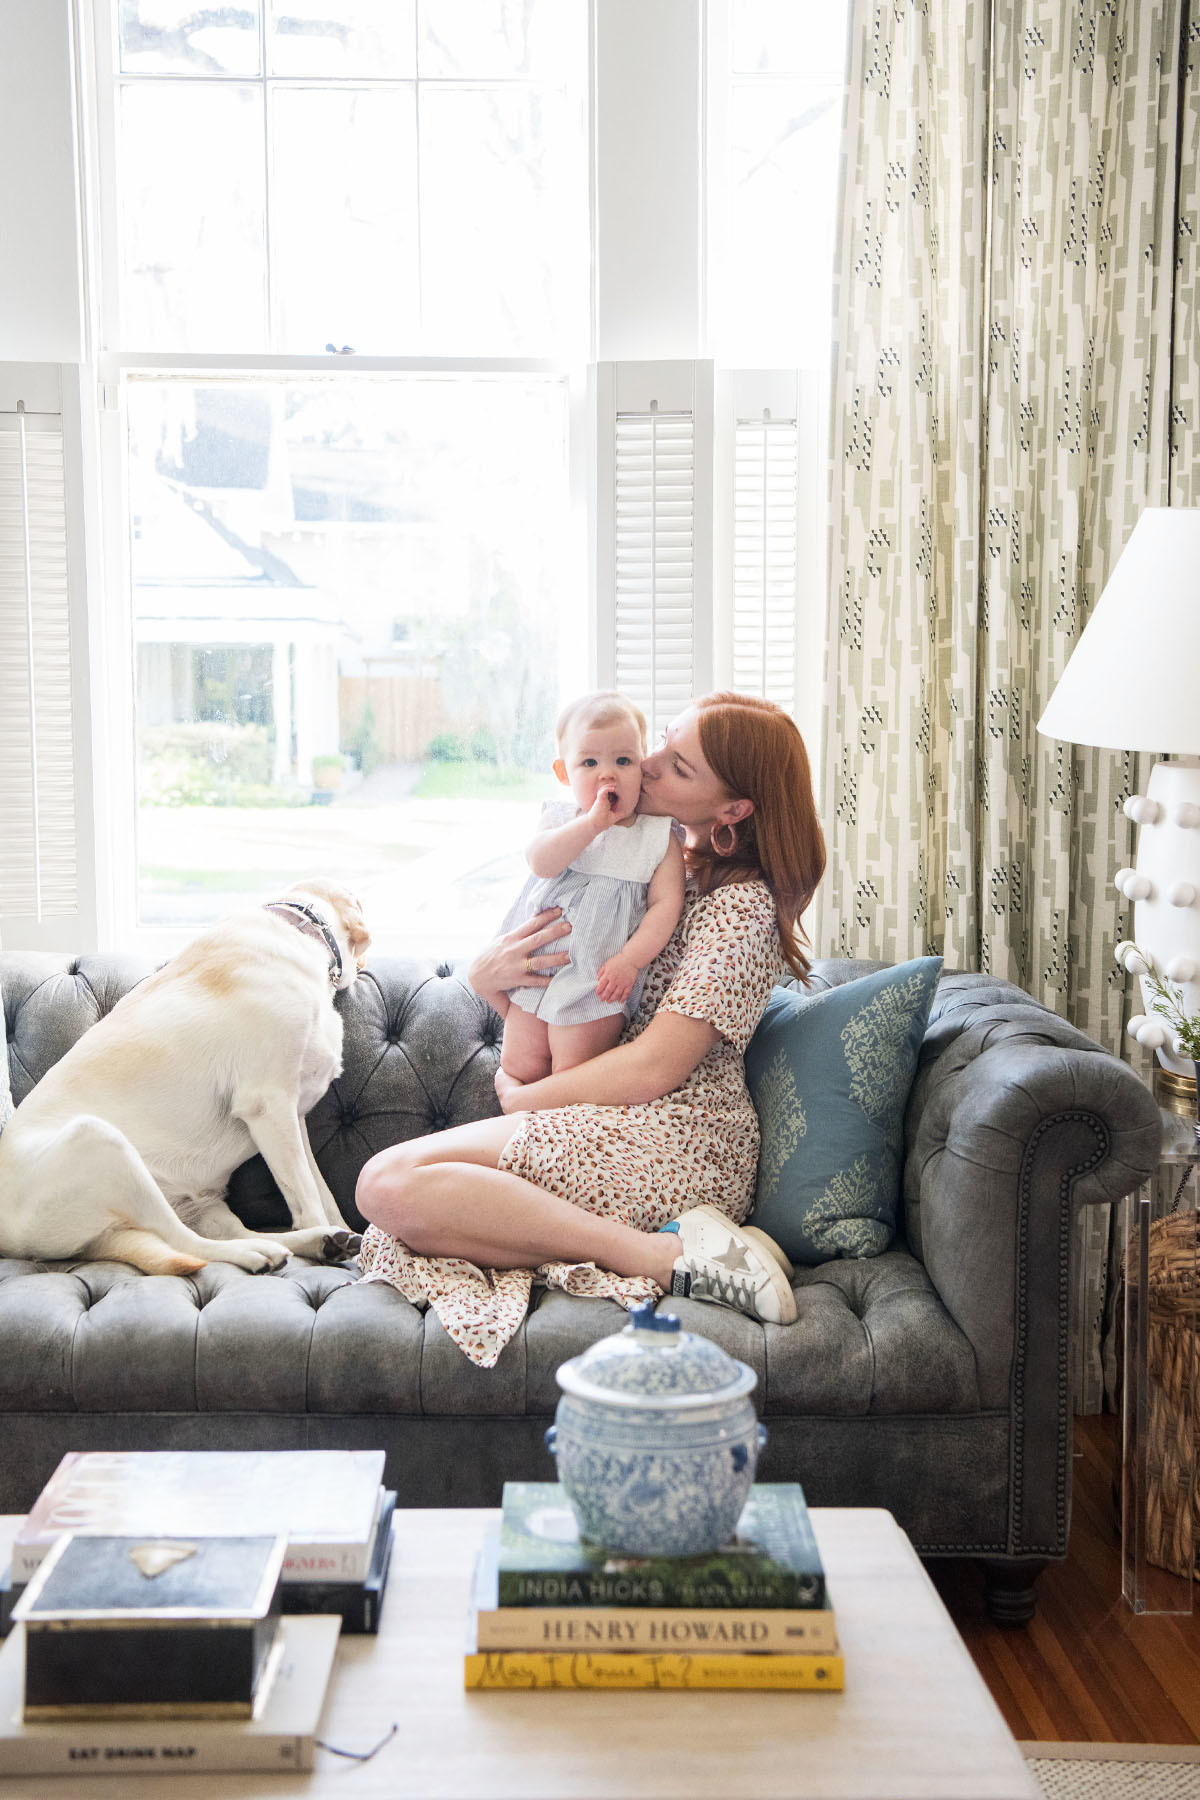 Eichholz (pictured here with daughter Tempe and labrador, Lola) admits the sitting room is her favorite space within the home.